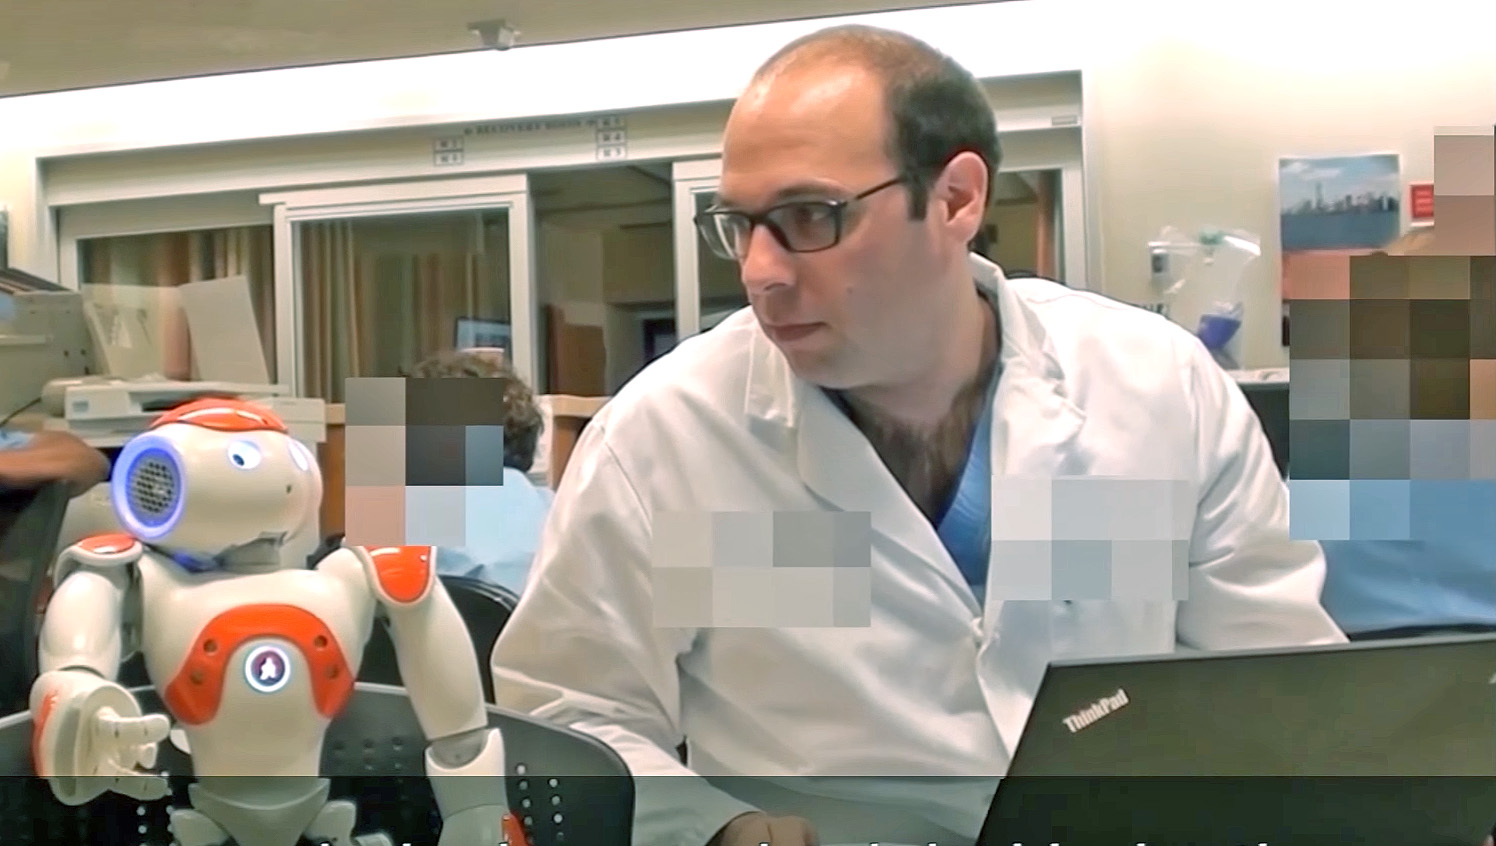 Nao robot advises a doctor on scheduling